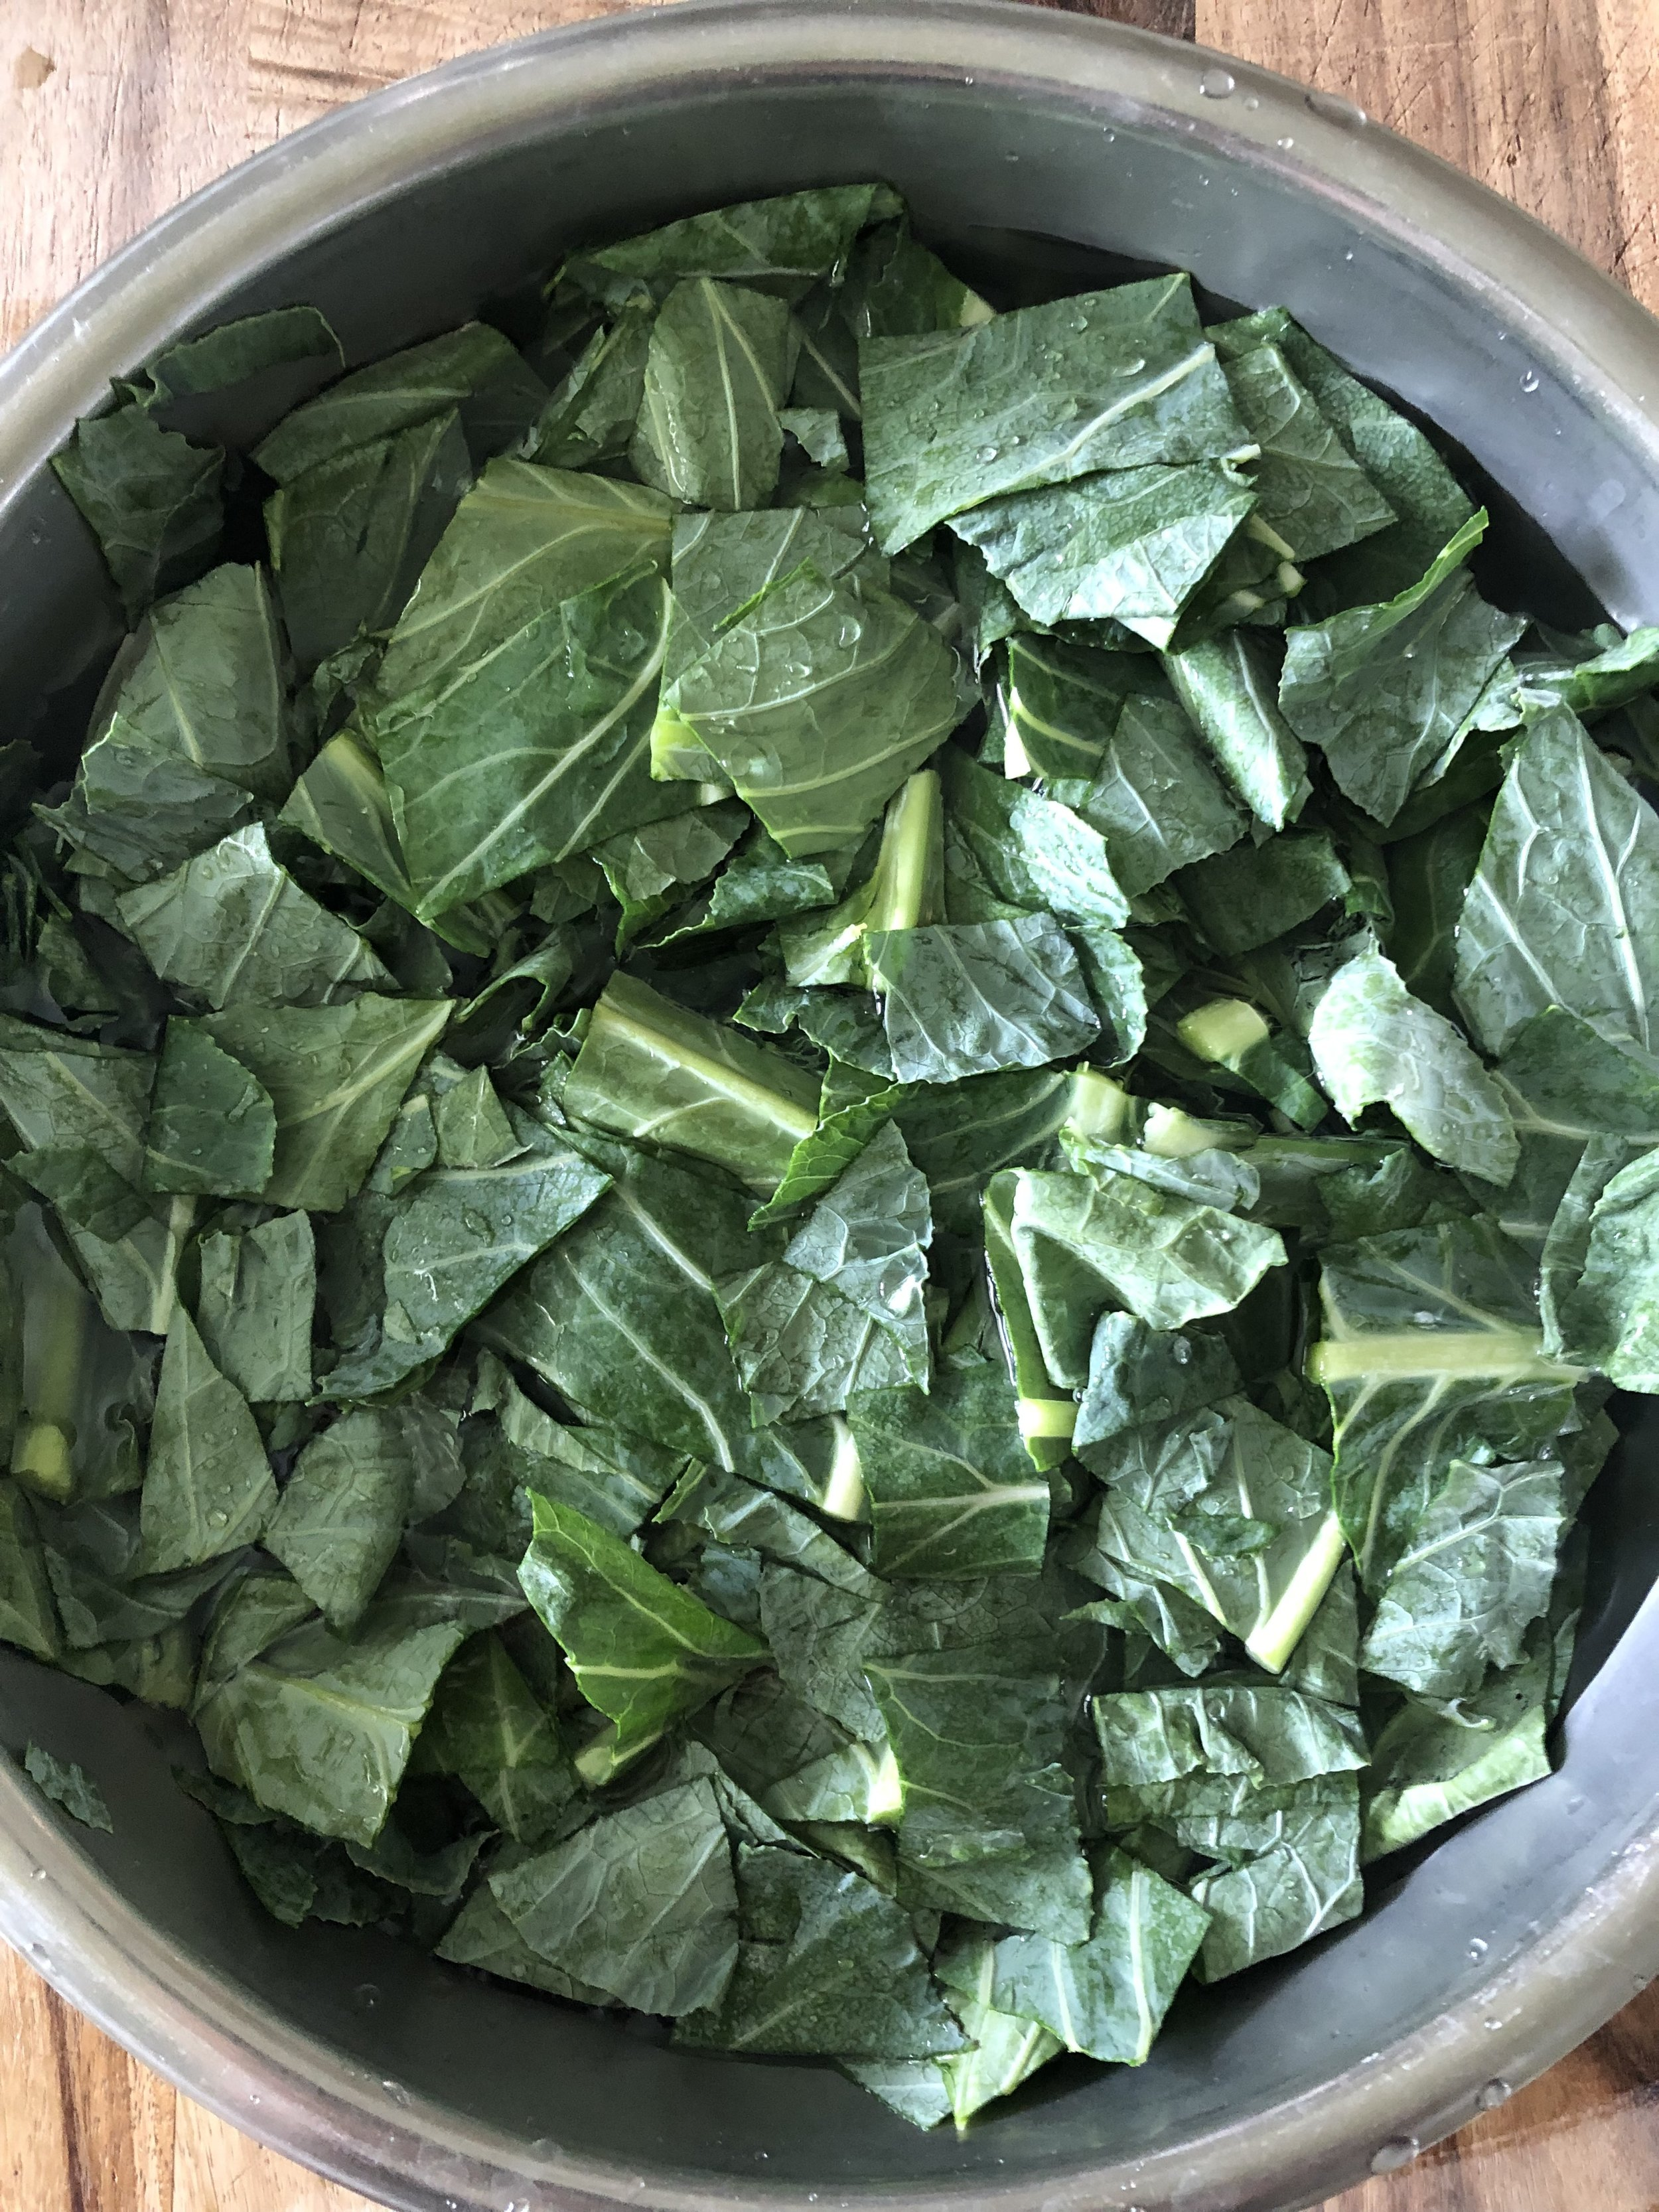 Rinse Collards 3-4 times in water to remove any sand.